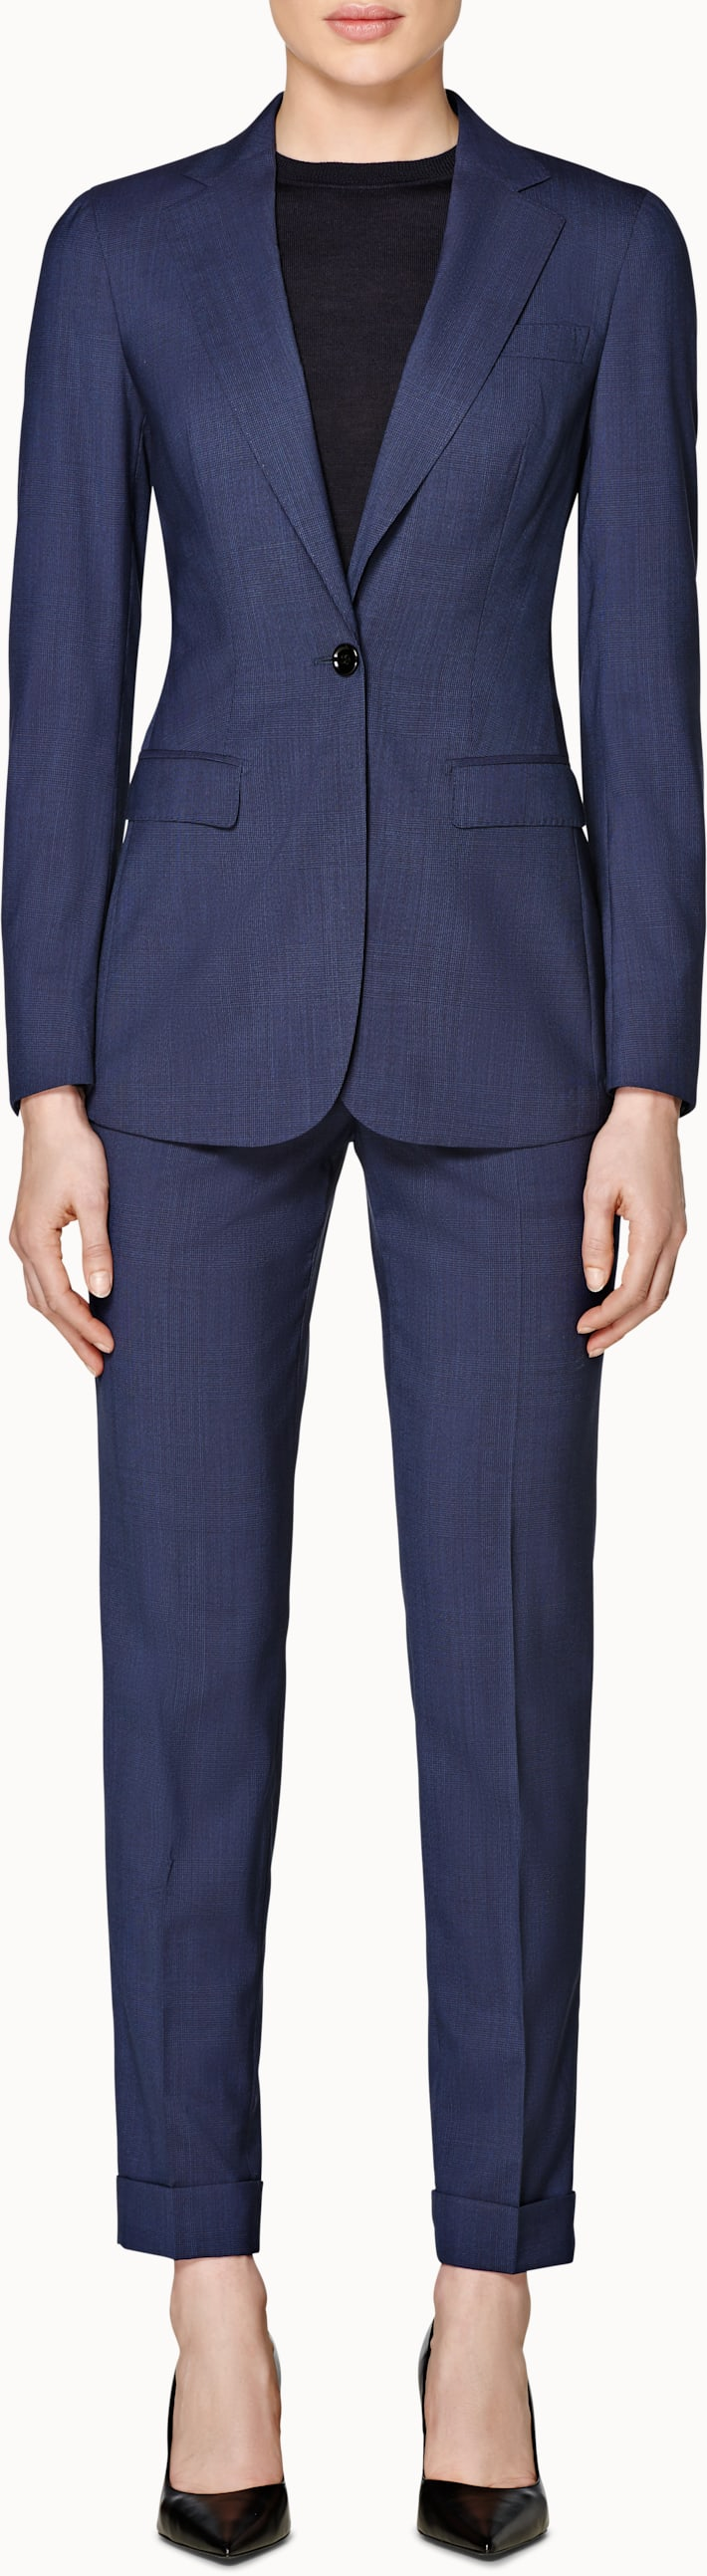 Cameron Navy Checked Suit